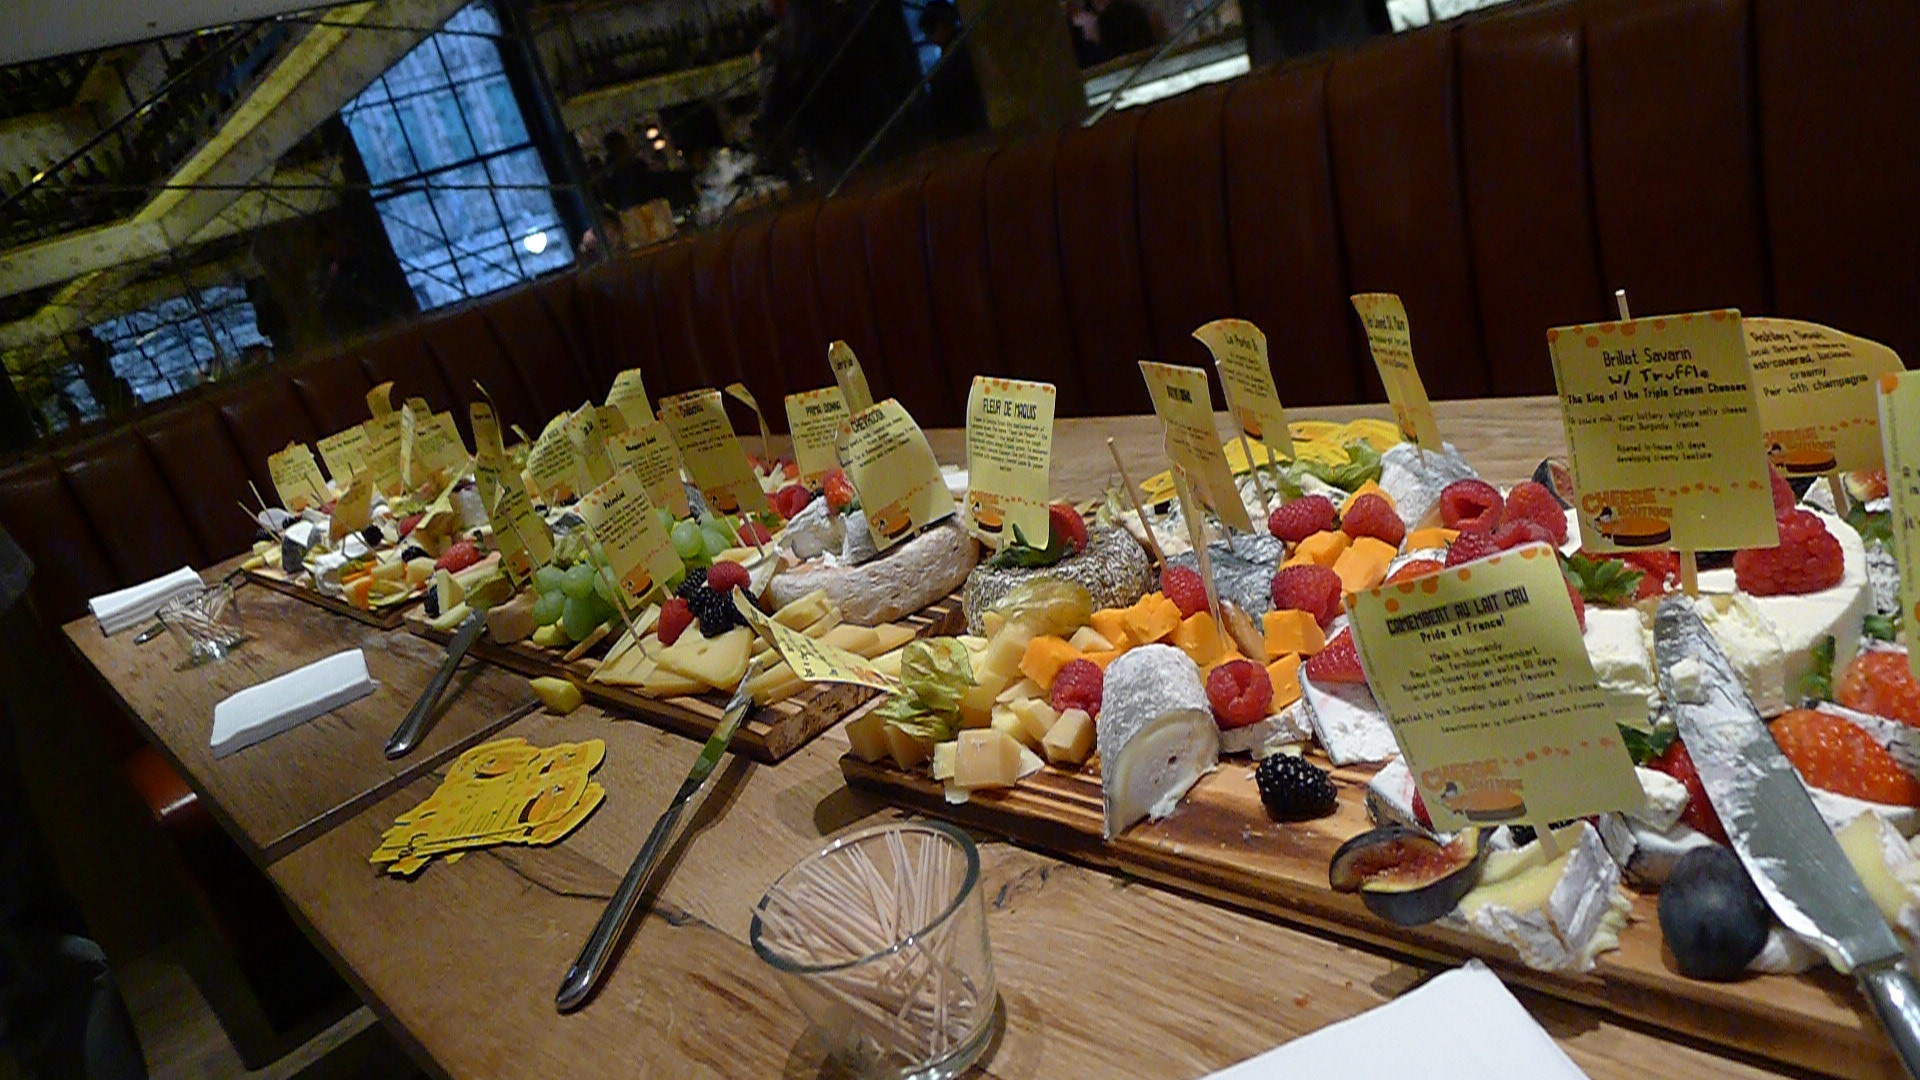 A terrific cheese display courtesy of Afrim at The Cheese Boutique.